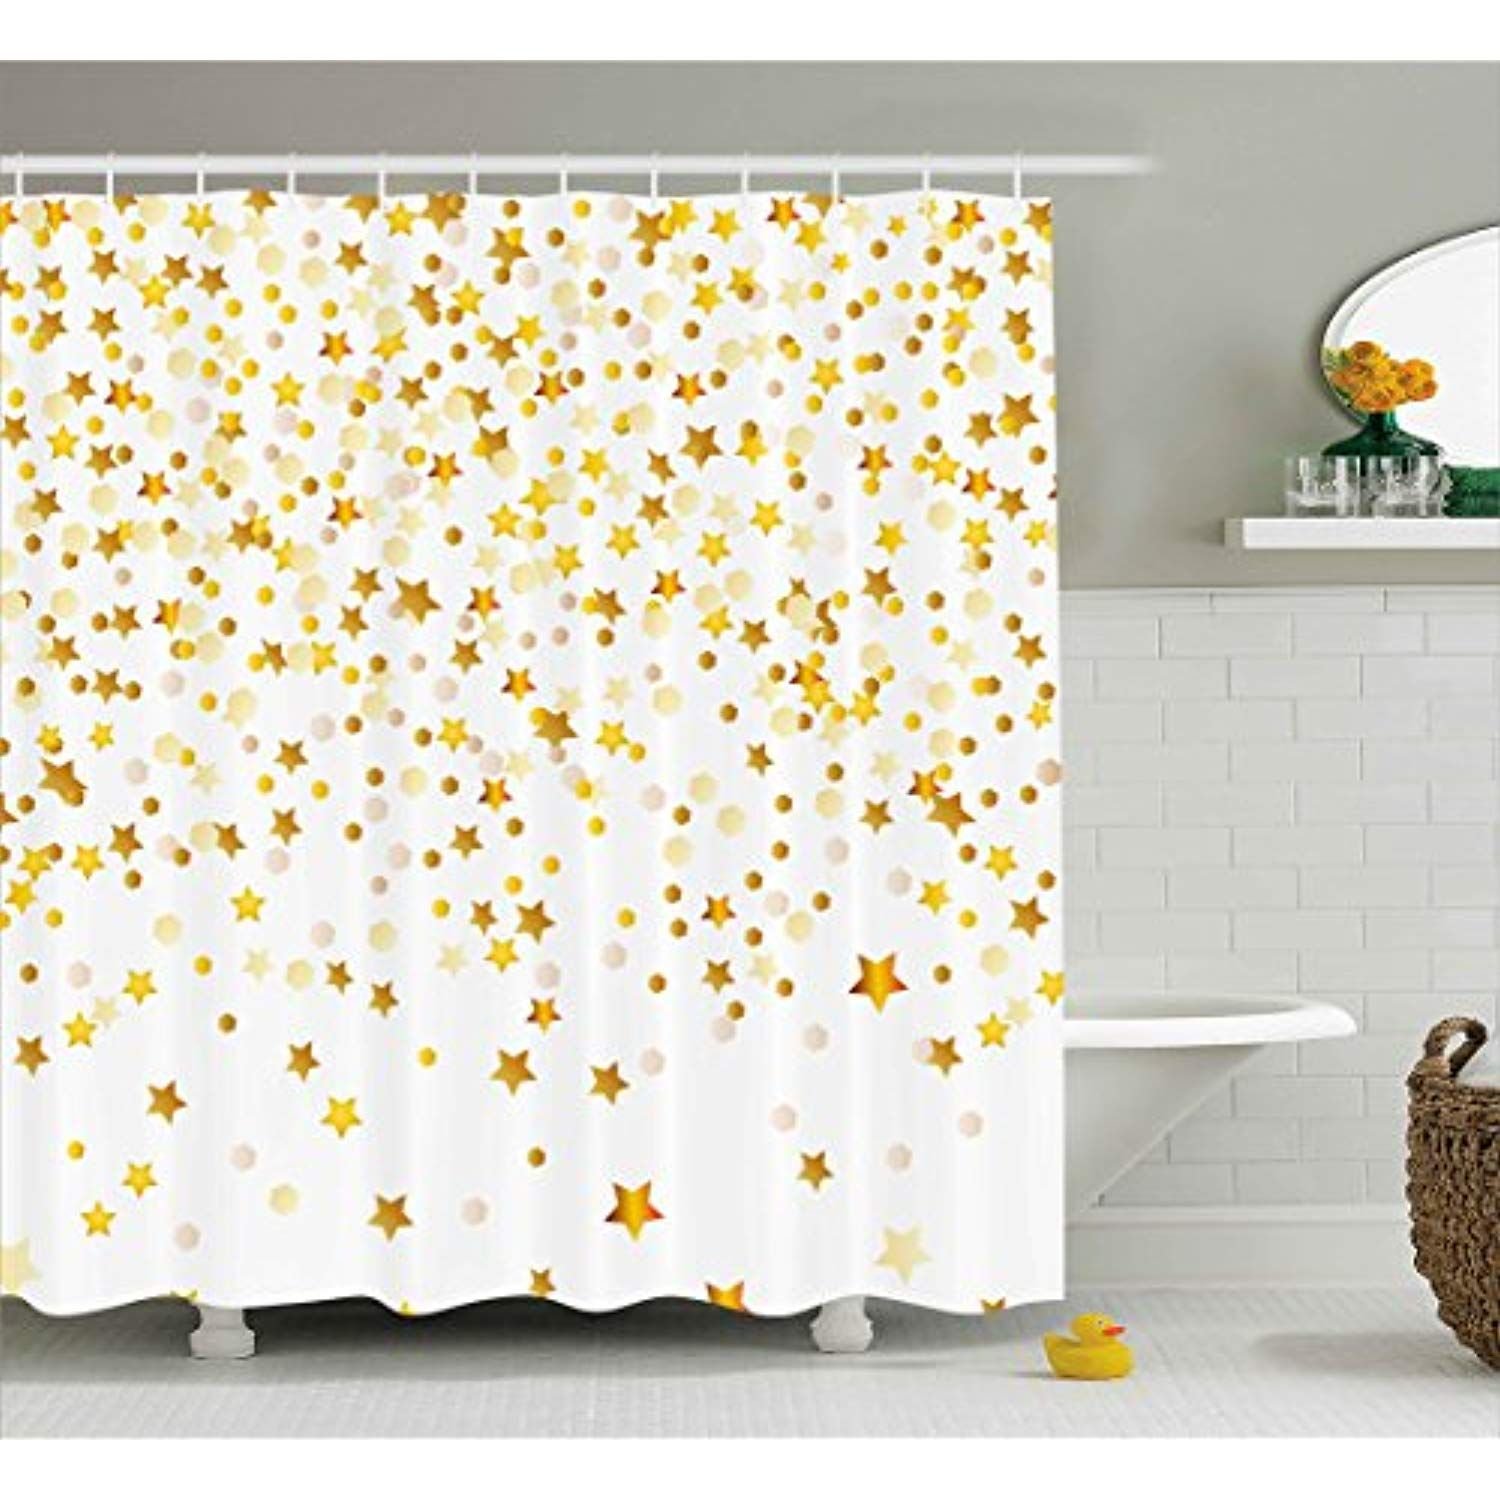 Ambesonne Abstract Decor Shower Curtain By Bunch Of Shiny Stars Backdrop Inspirational Lucky Lifes Abstract Shower Curtain Cool Shower Curtains Shower Curtain